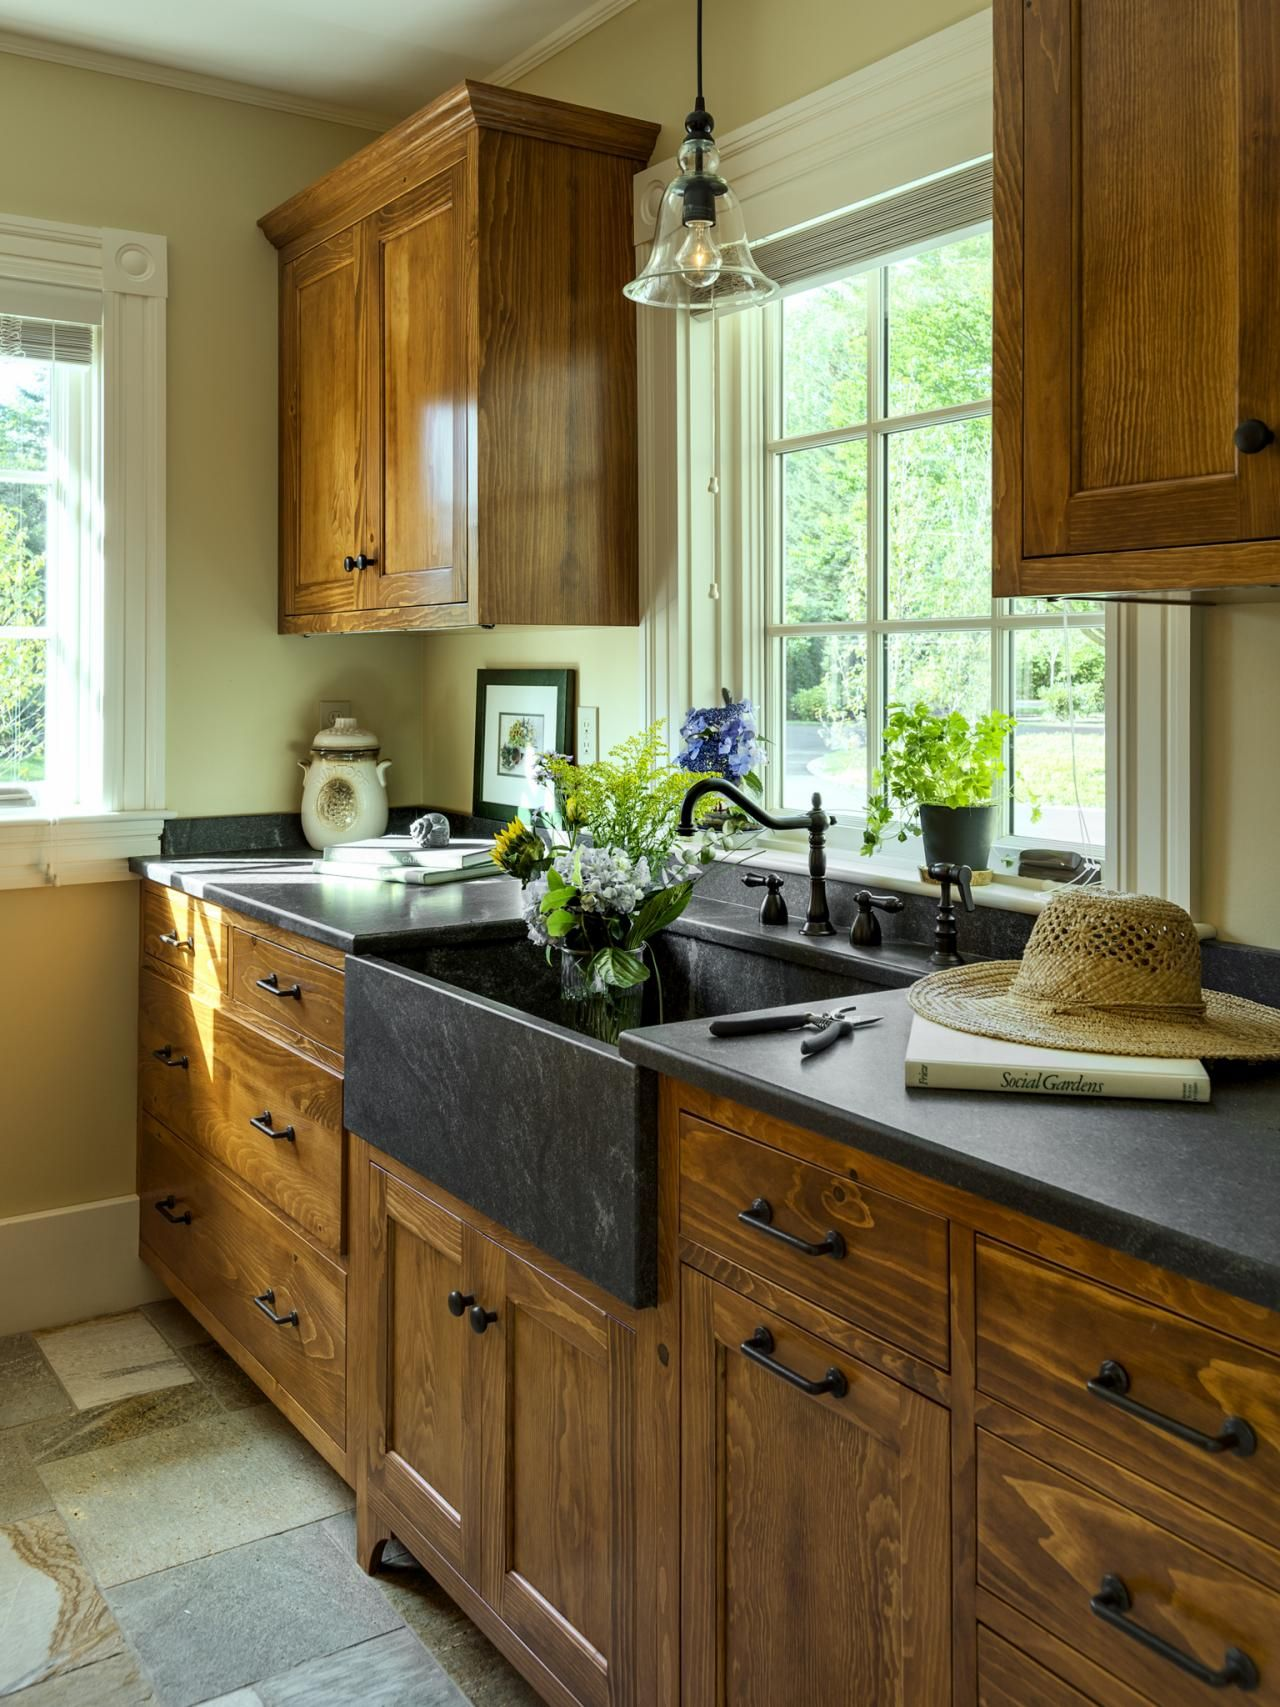 Top 50 pinterest gallery 2014 hgtv sinks and kitchens for Kitchen cabinets and countertops ideas